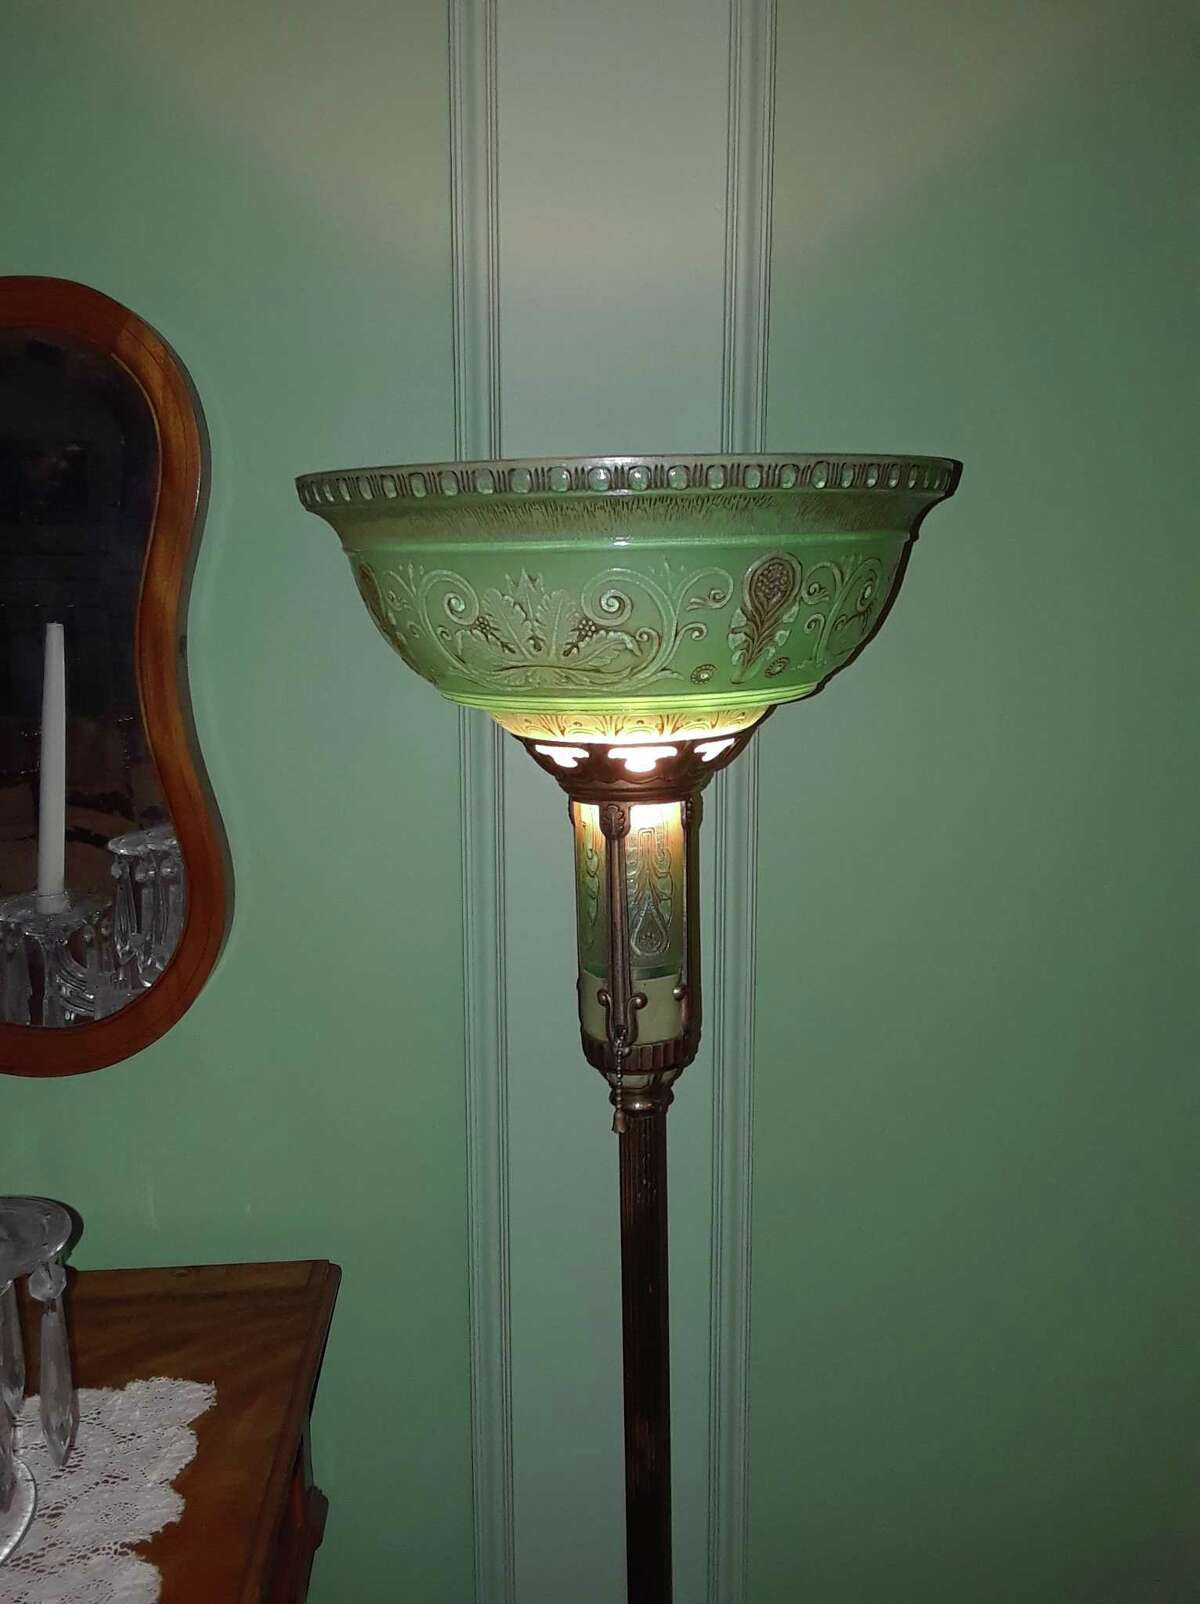 The Hotchkiss-Fyler House, home of the Torrington Historical Society at 192 Main St., is open for holiday tours starting Dec. 12. Above, an antique lamp on the second floor.